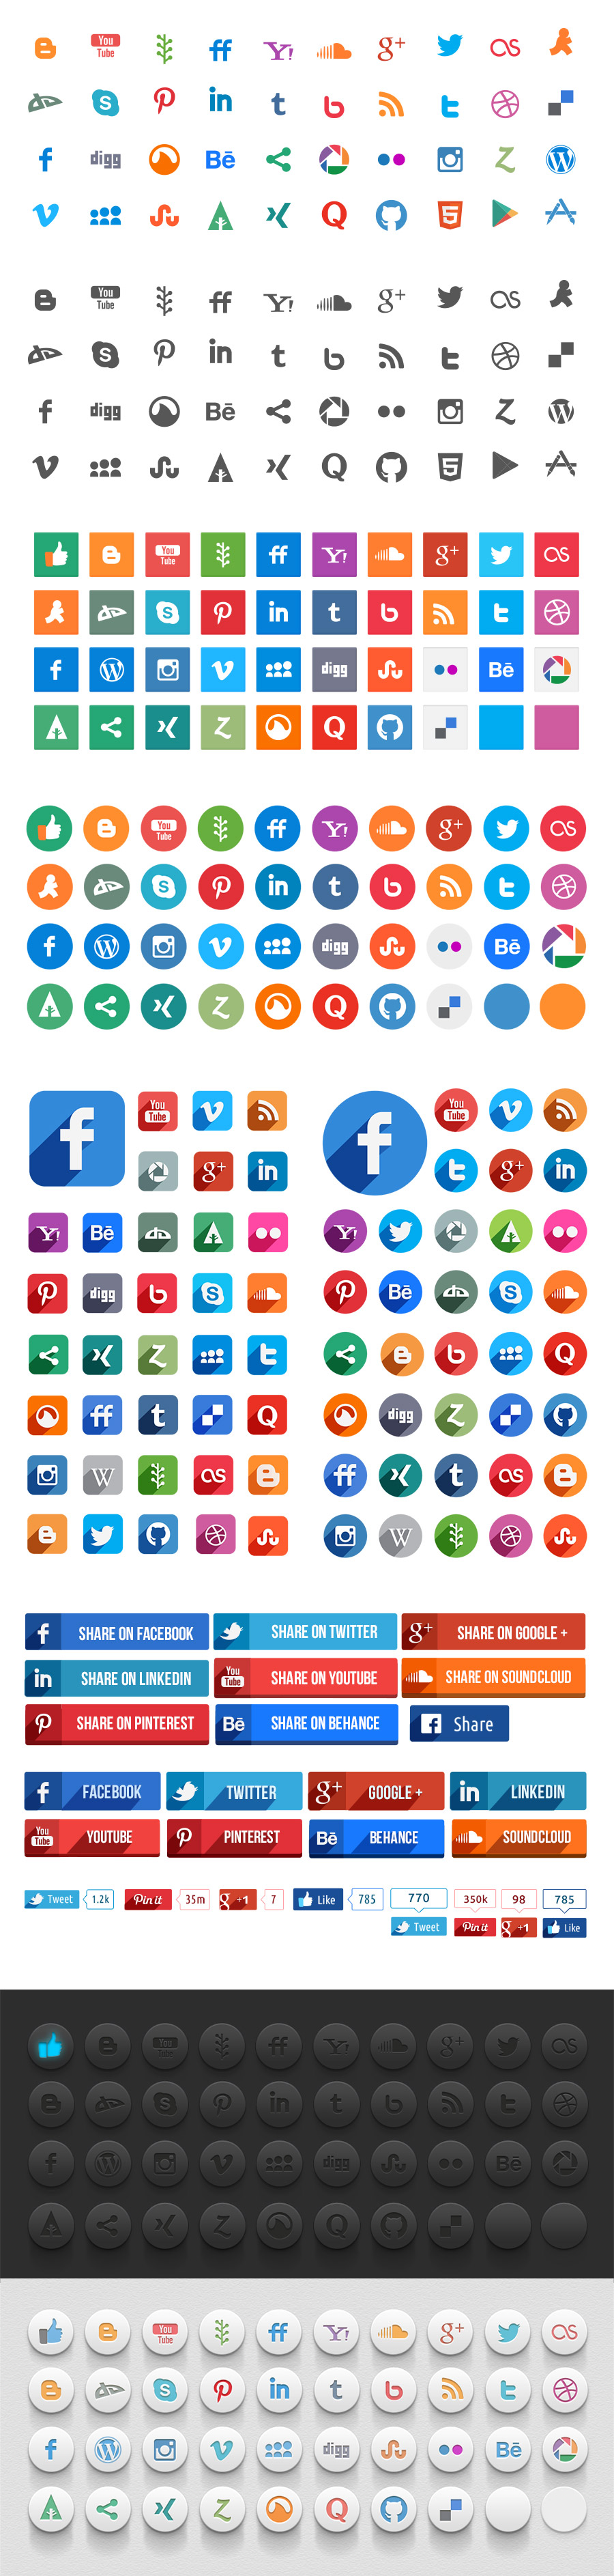 Tonicons Free Social Media Icons